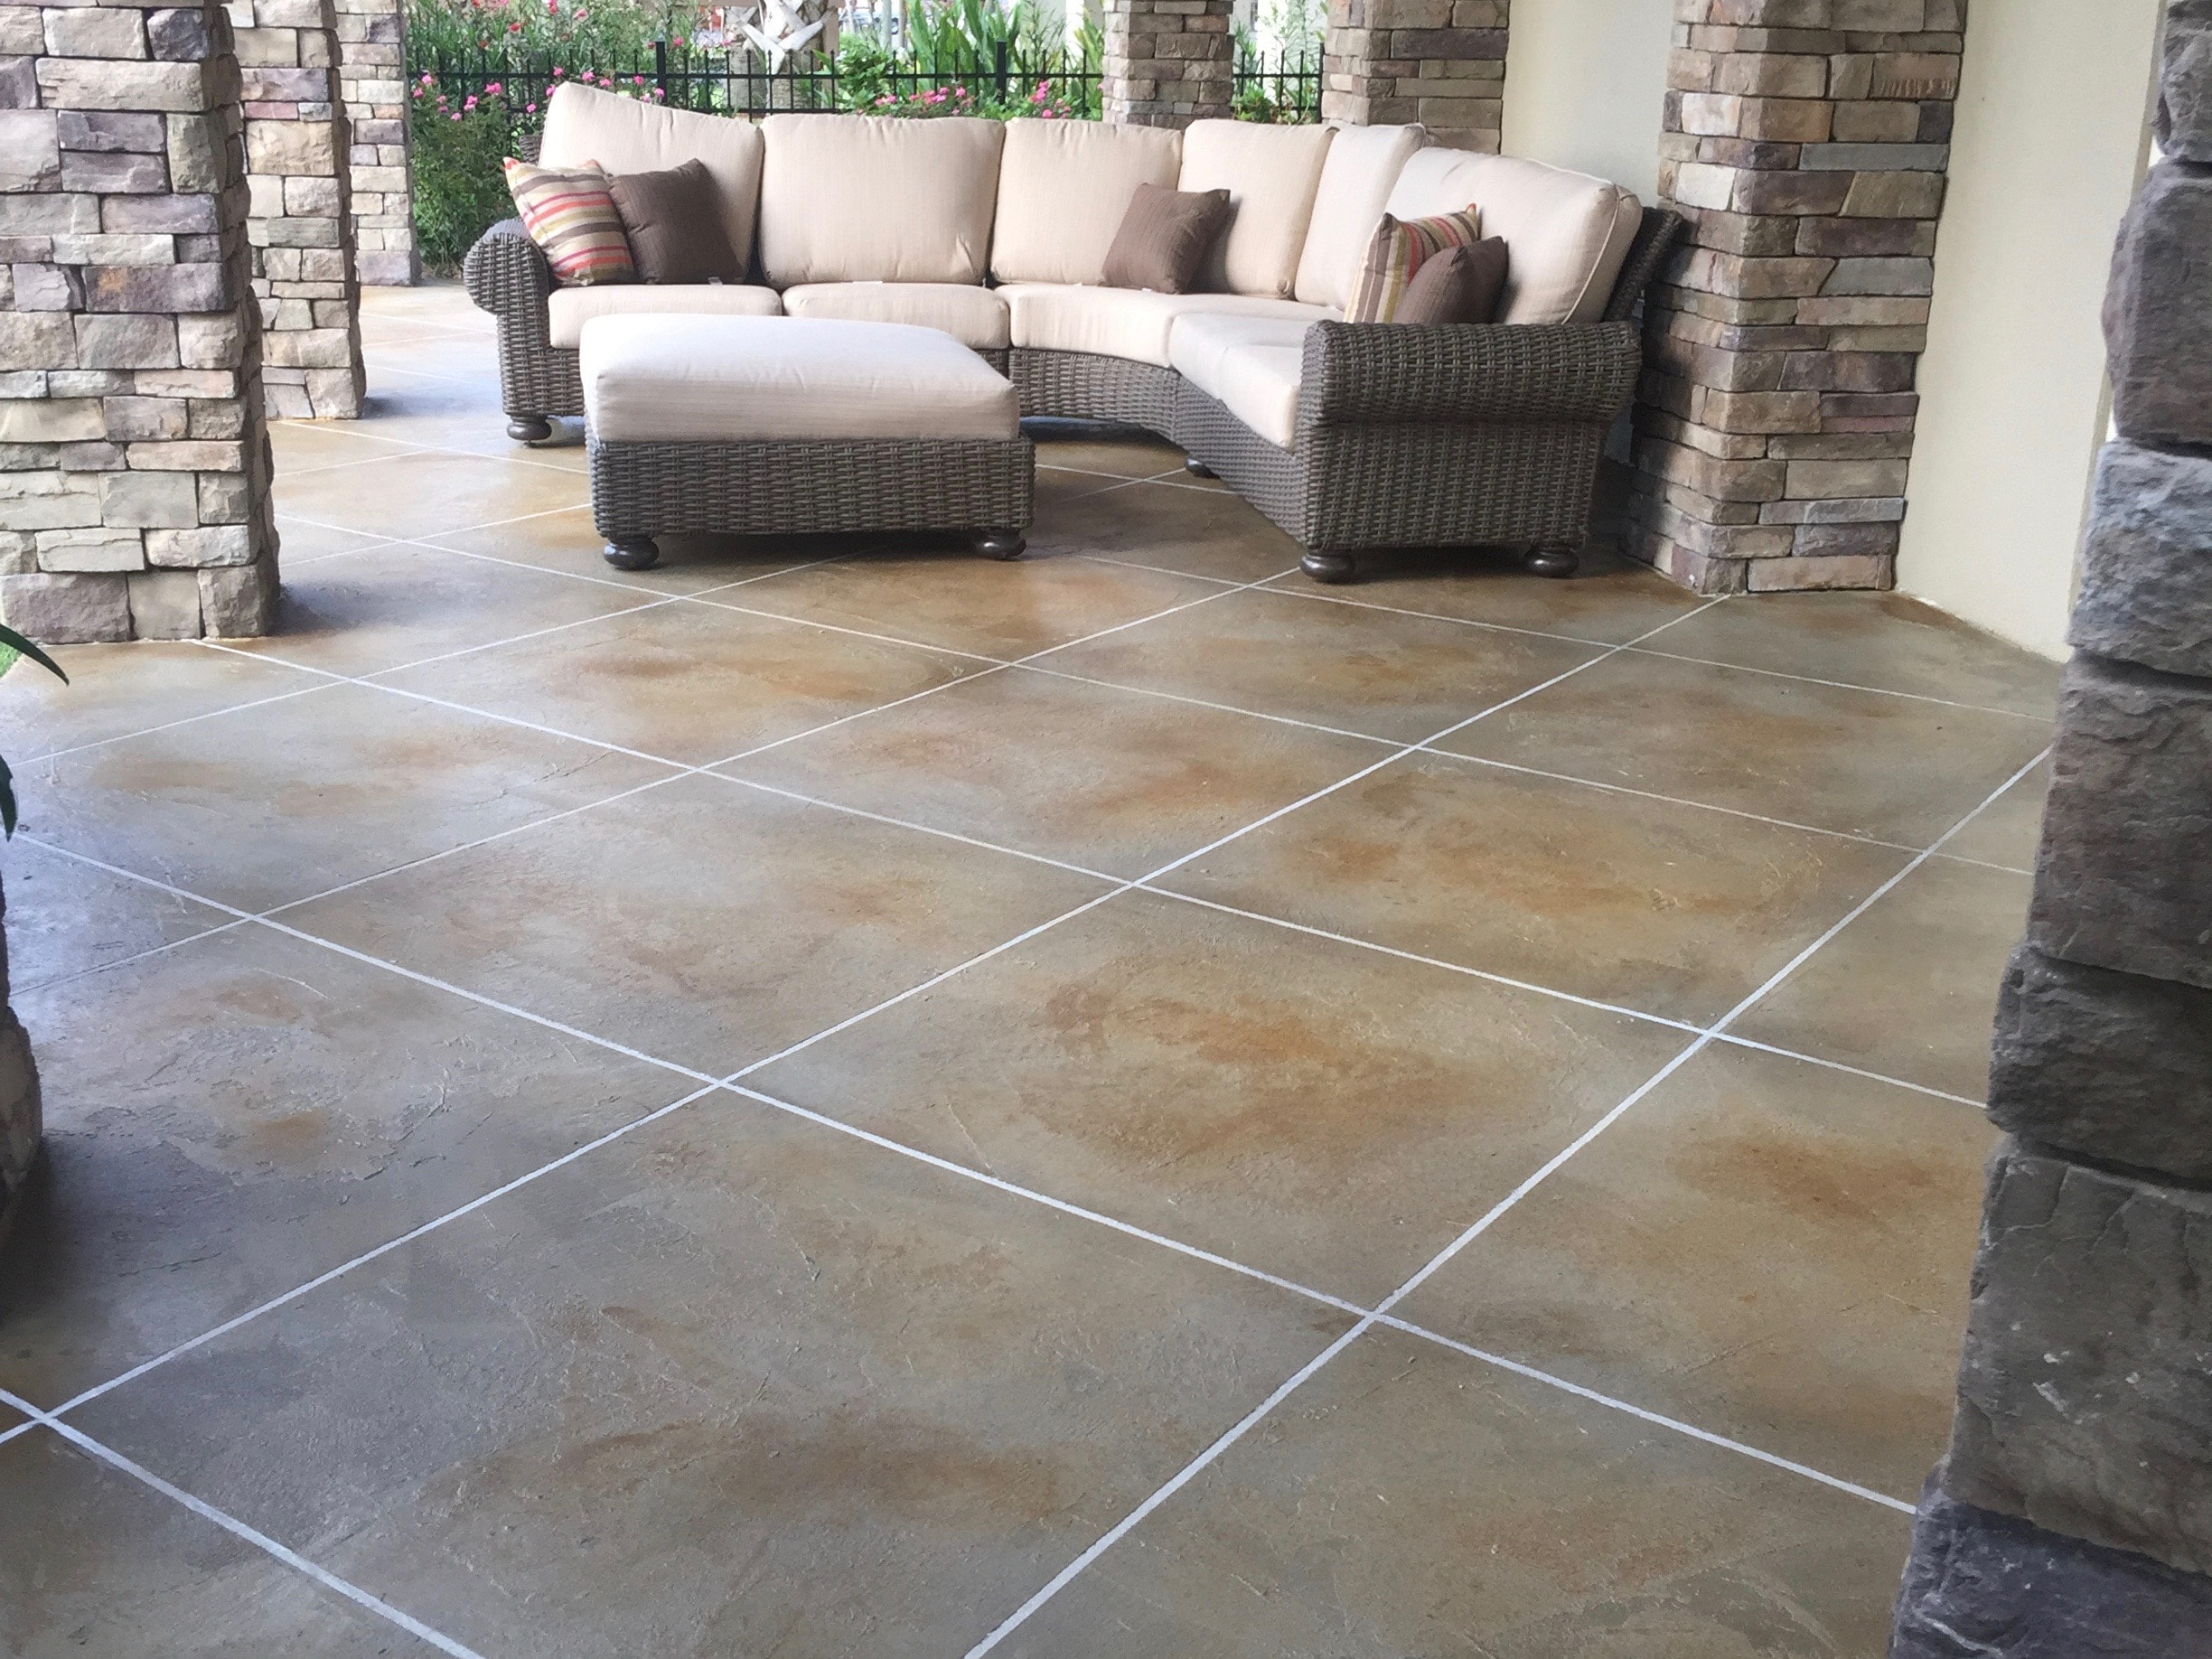 Outdoor patio of residential home